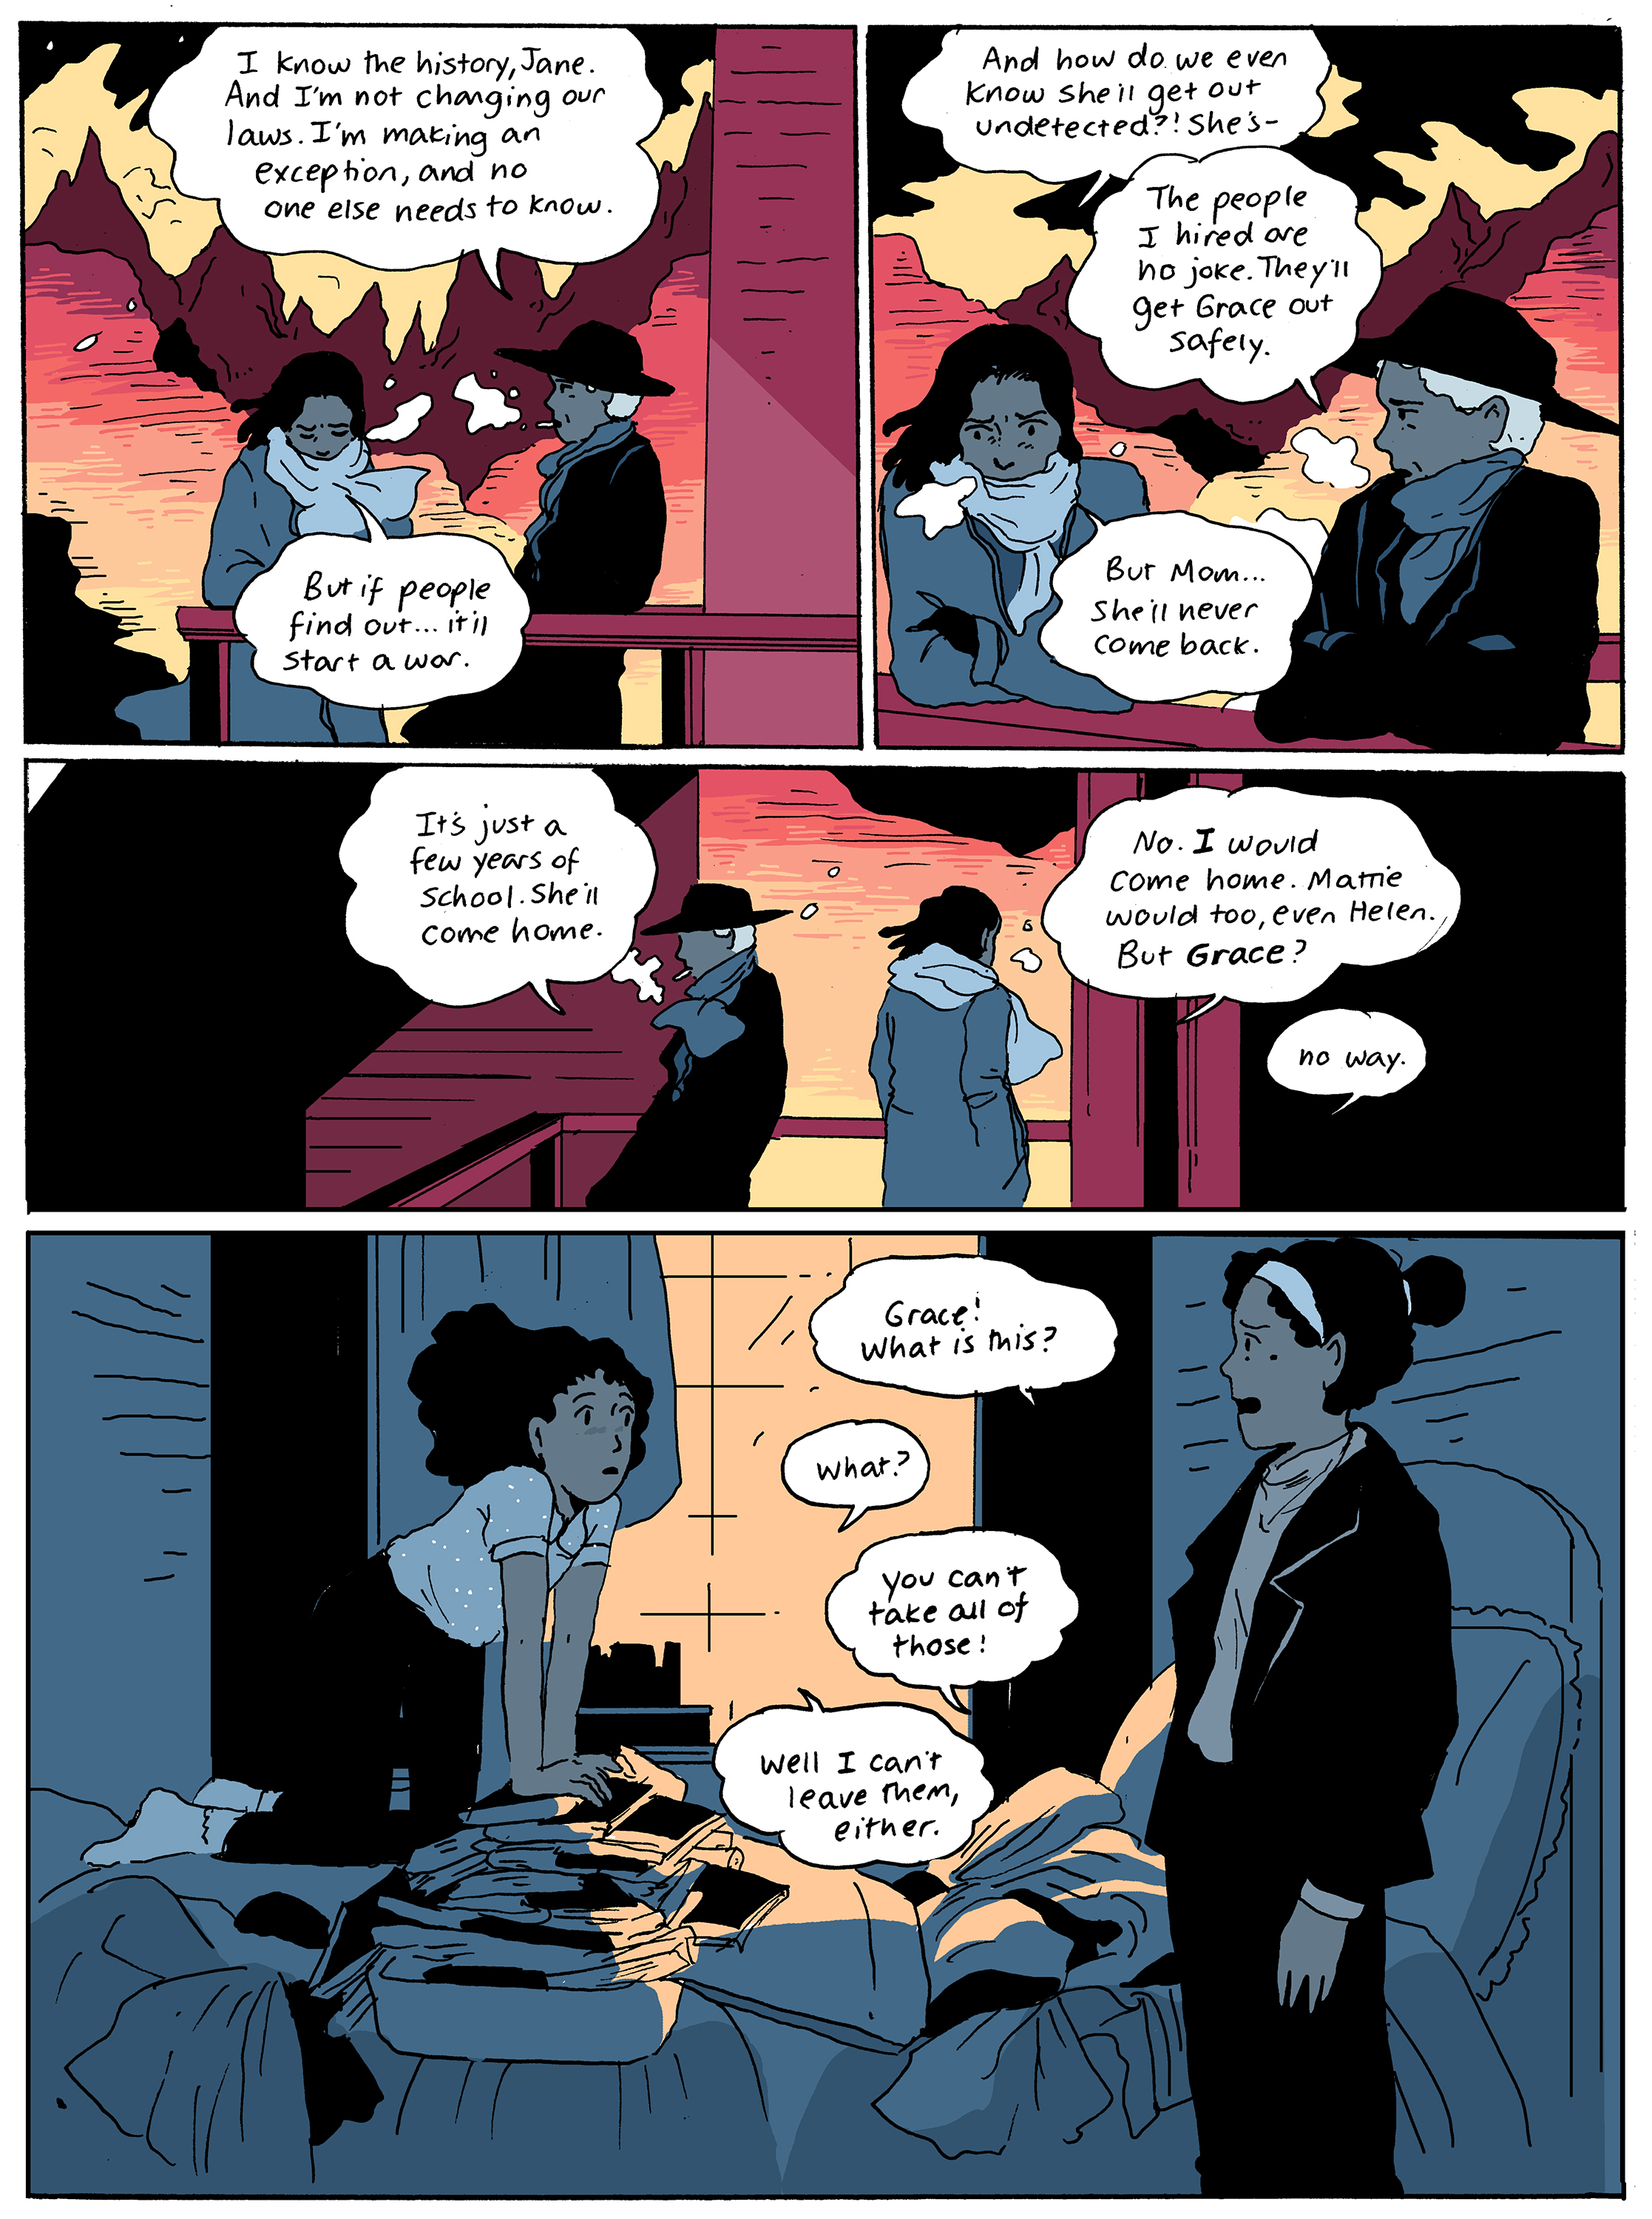 chapter10_page22.jpg